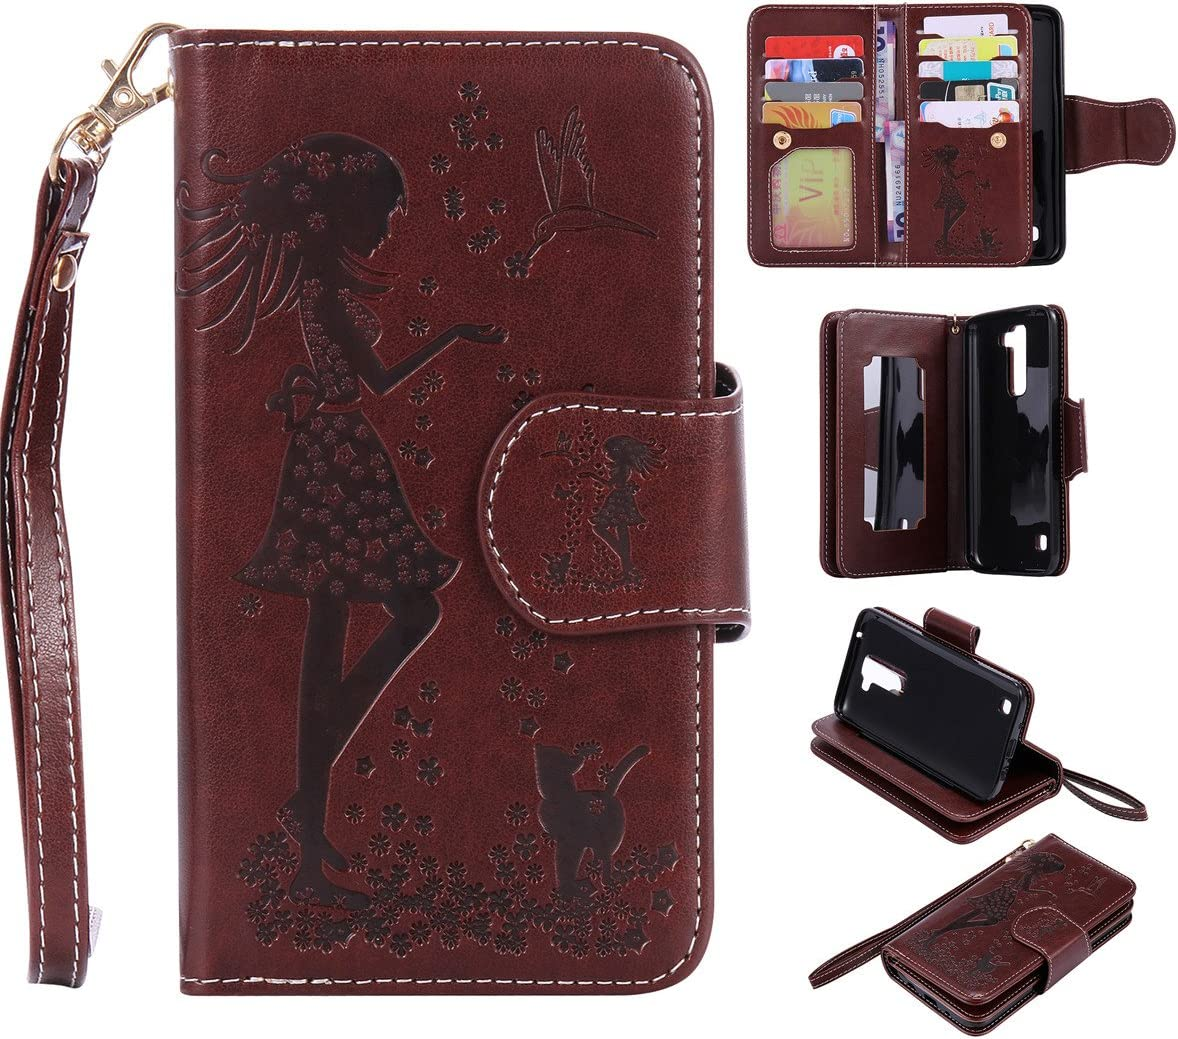 LG K7 Case, LG Tribute 5 Case, Love Sound [Cat Girl/Brown] [Wrist Strap] [Cosmetic Mirror] Luxury PU Leather Wallet Case Flip Cover Built-in 9 Card Slots Stand for LG K7/LG Tribute 5